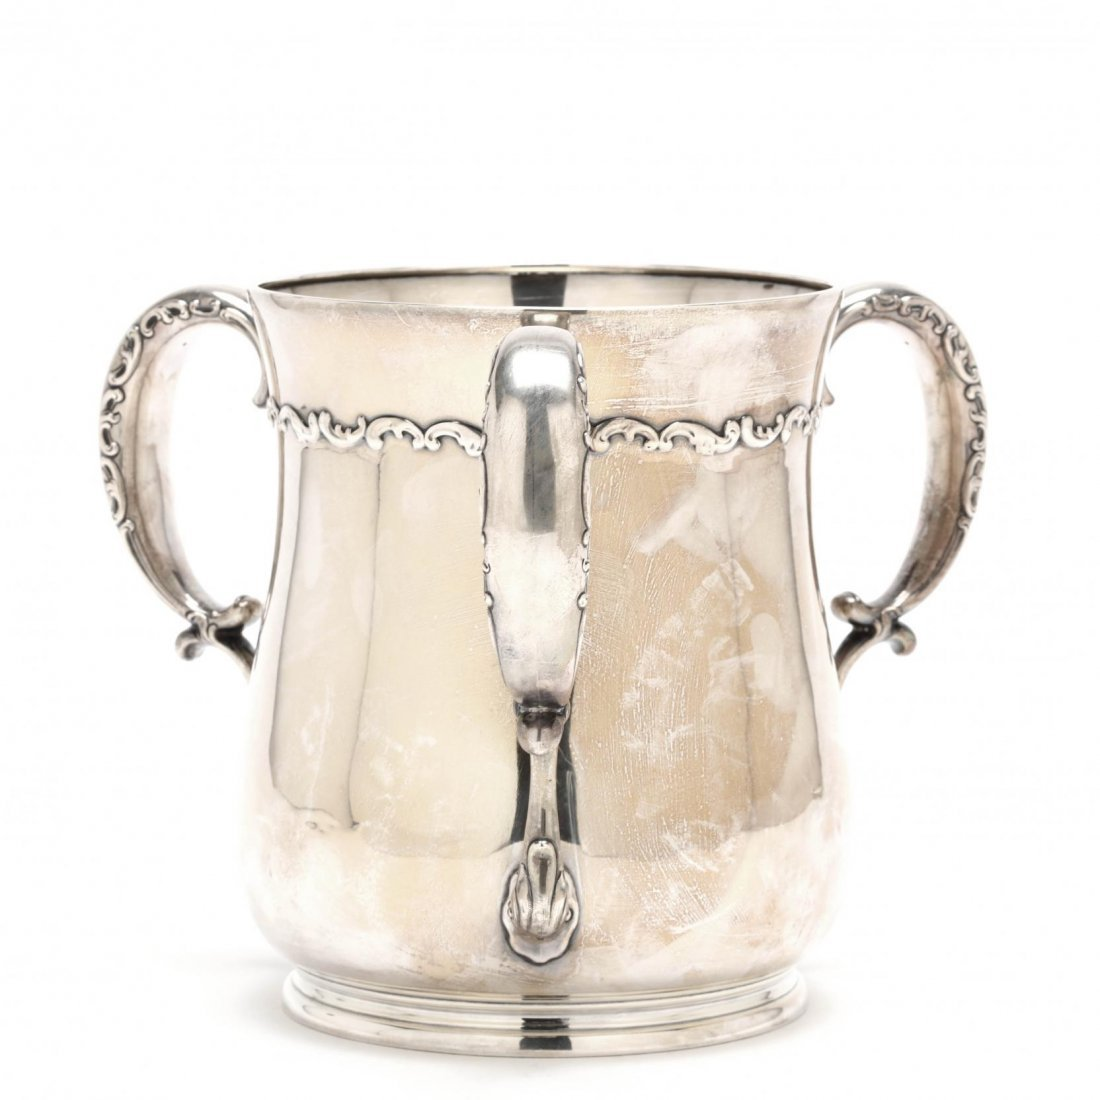 A Sterling Silver Loving Cup by Whiting Mfg. Co.